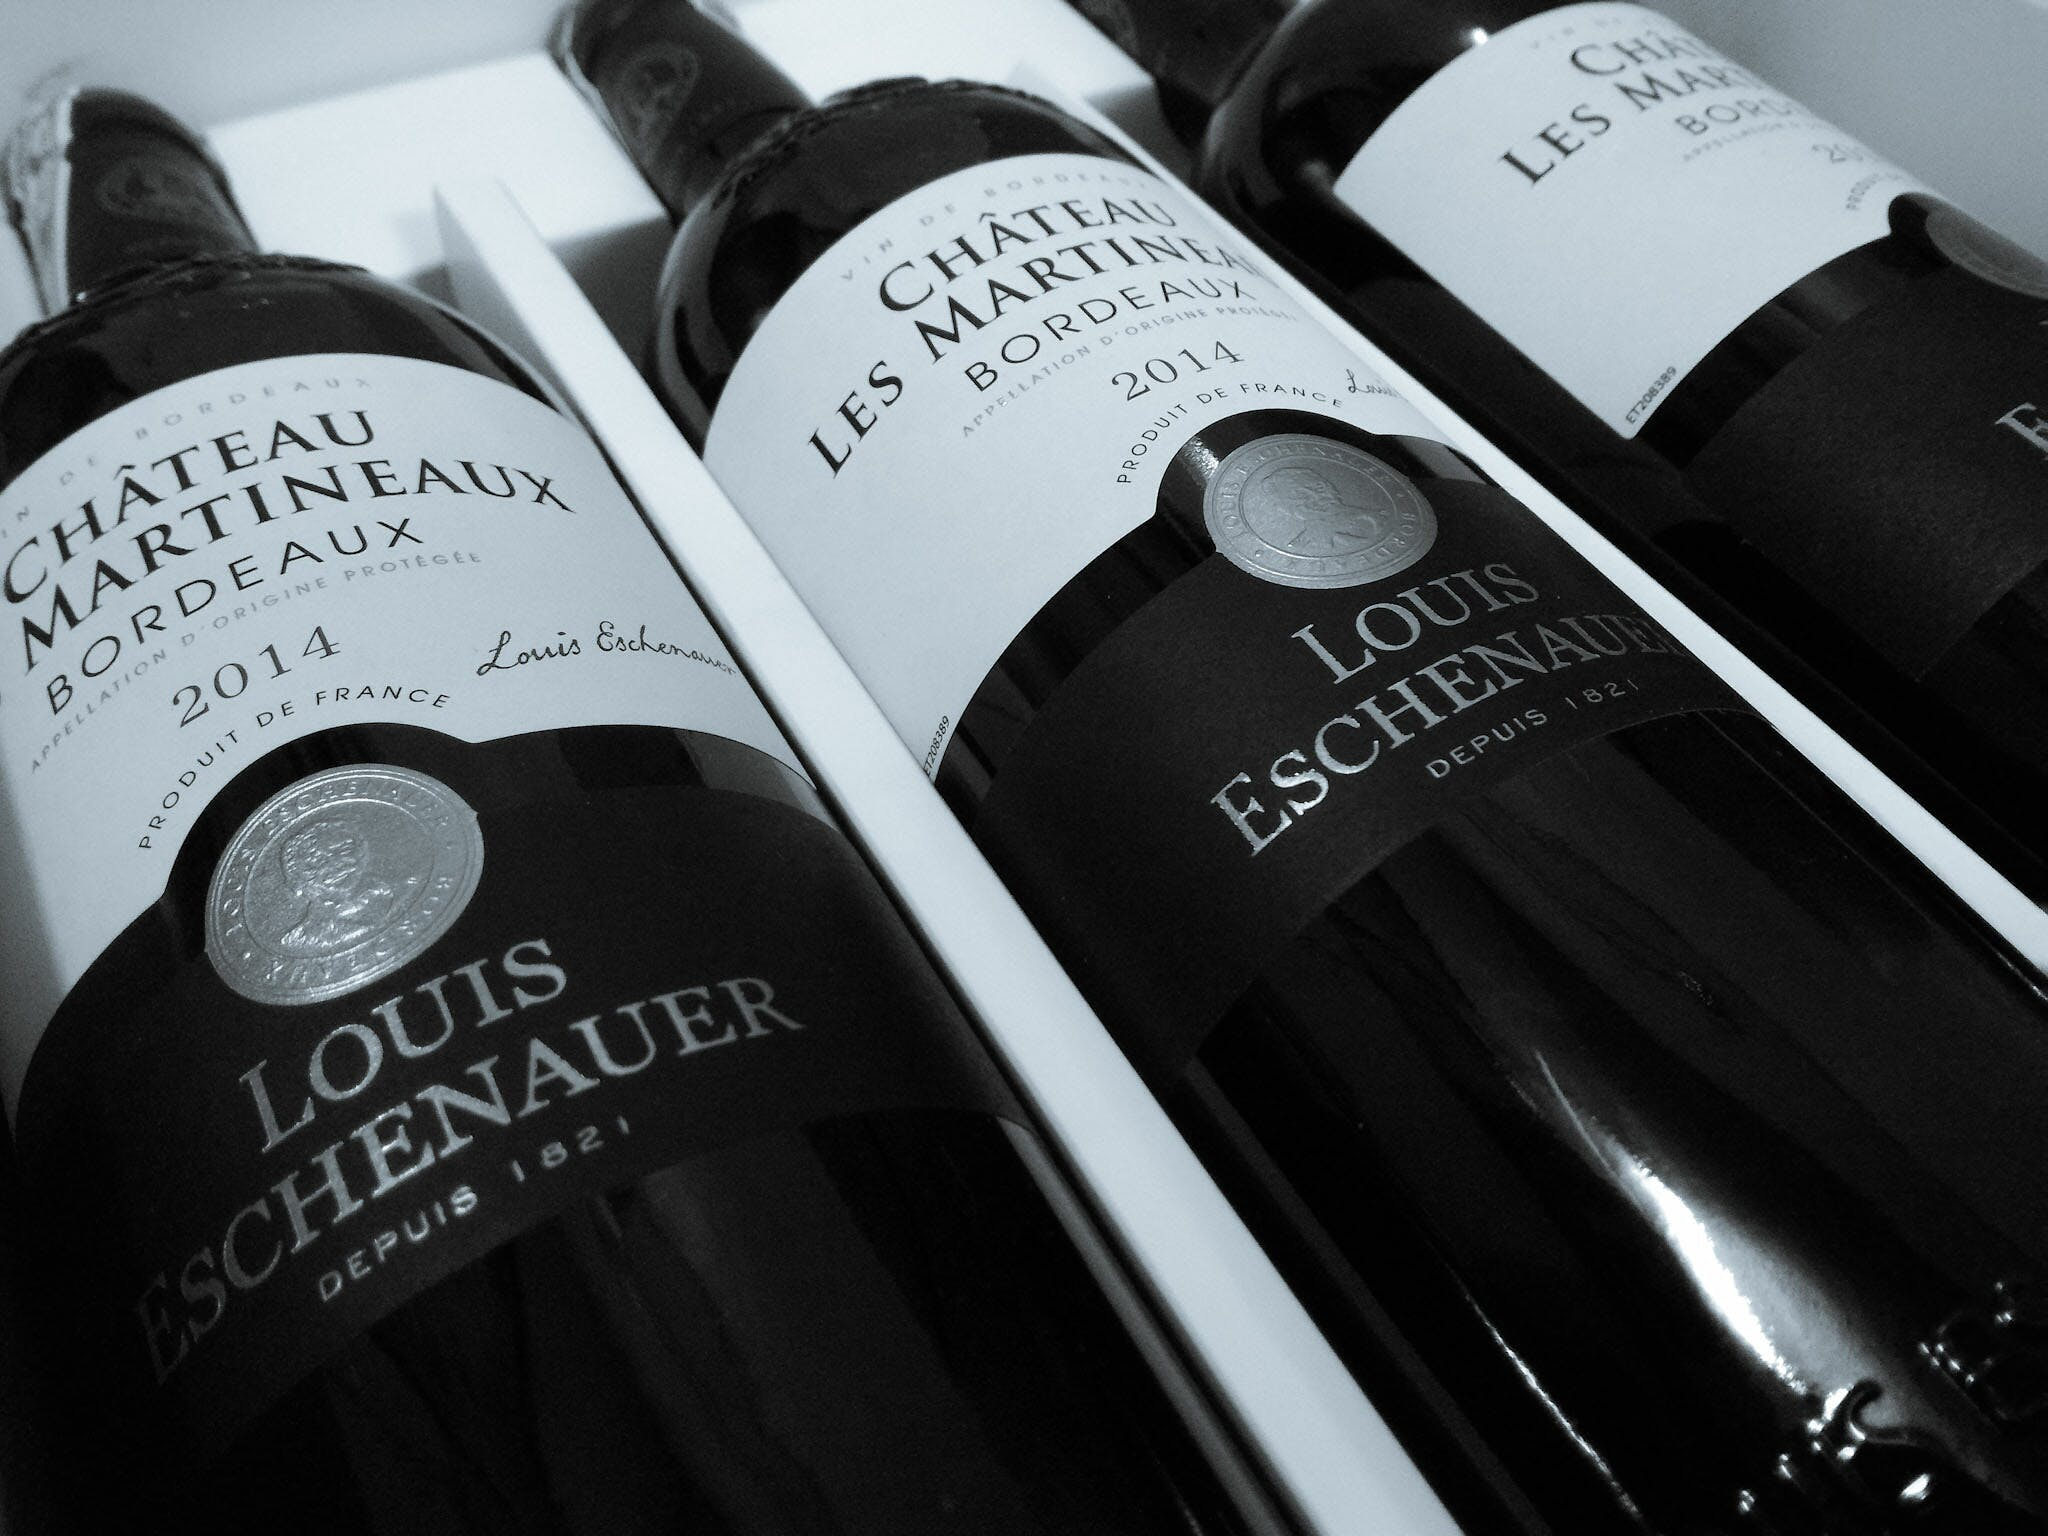 2014 Three Chateau Les Martineaux Bordeaux Bottles